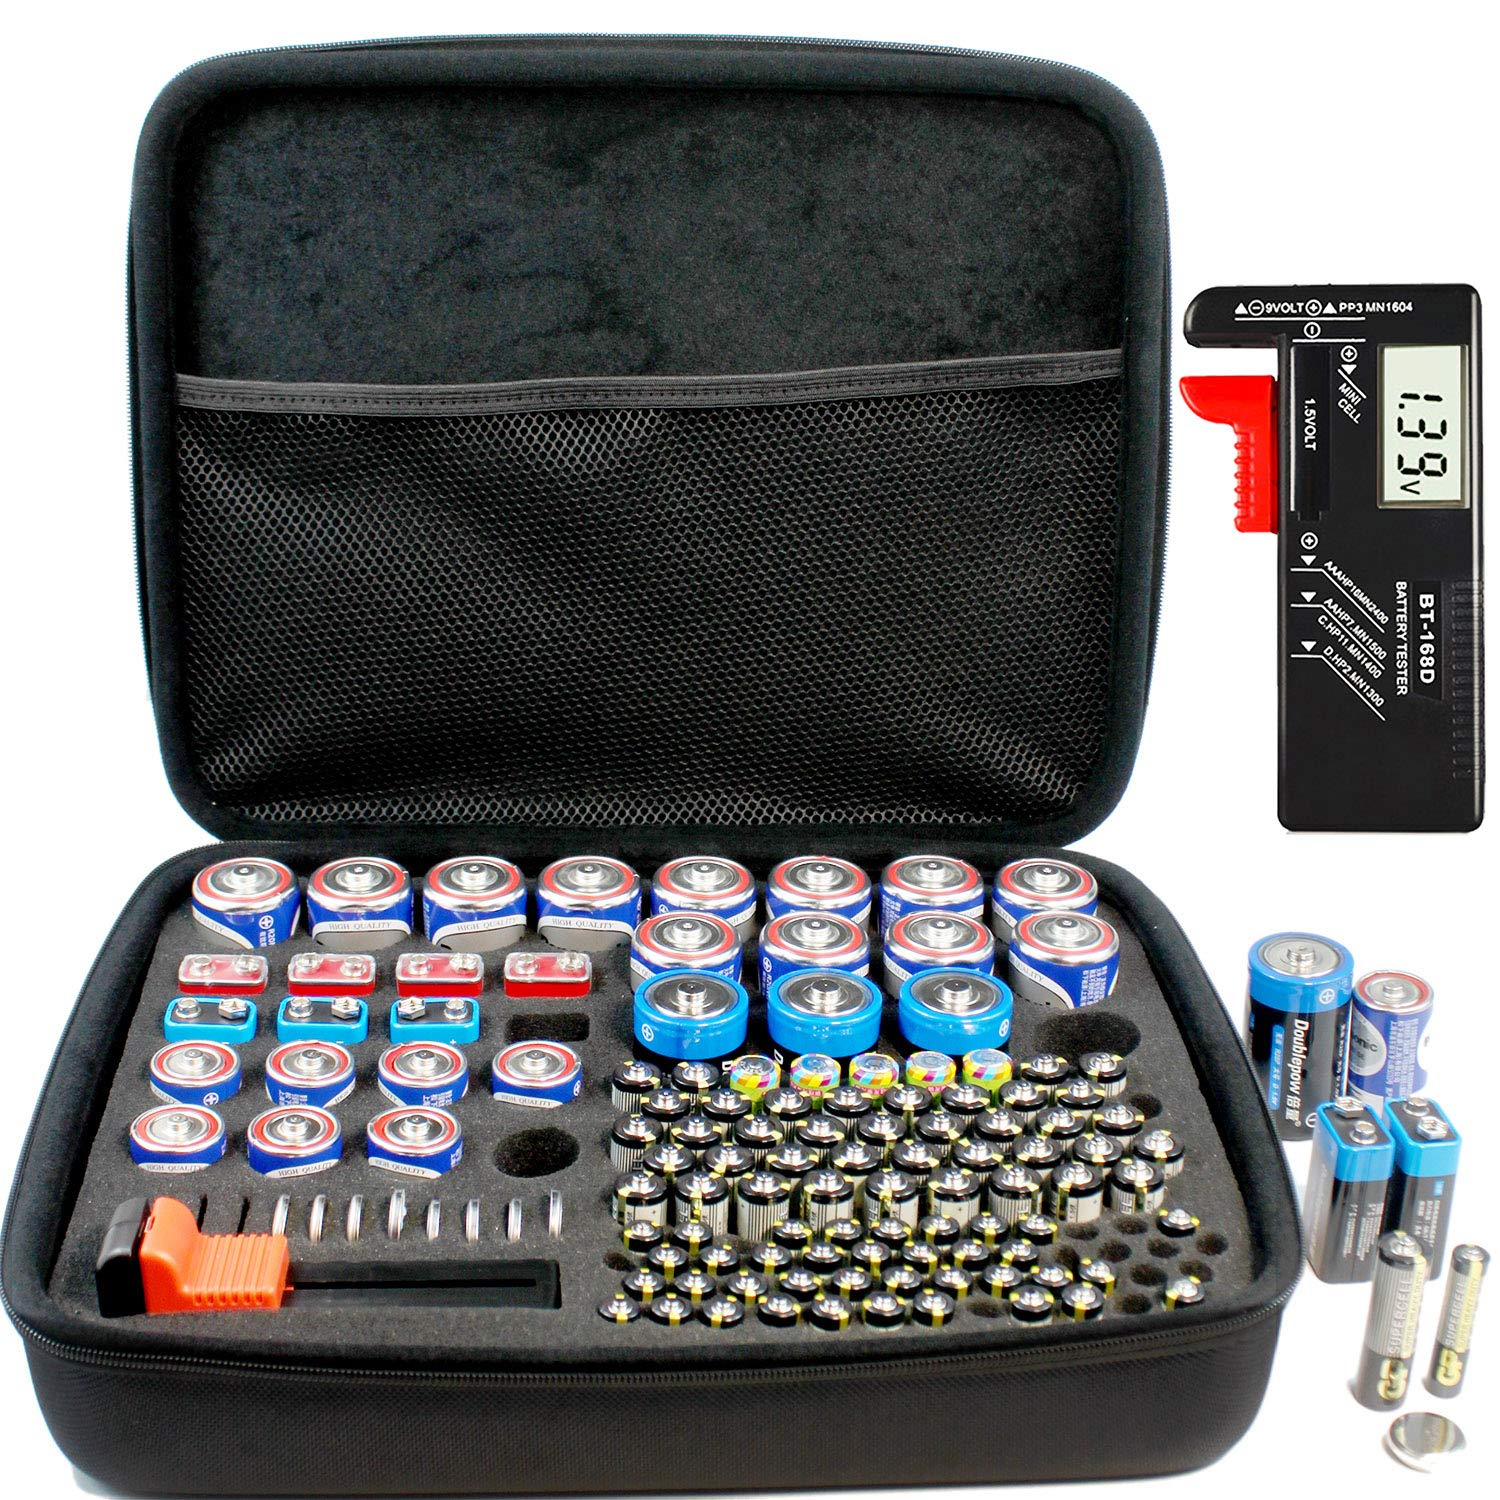 Full Size Battery Organizer Storage case with Digital Battery Tester/Checker, C D 9V AA AAA Battery Organizer(No Battery Included) by RIGICASE